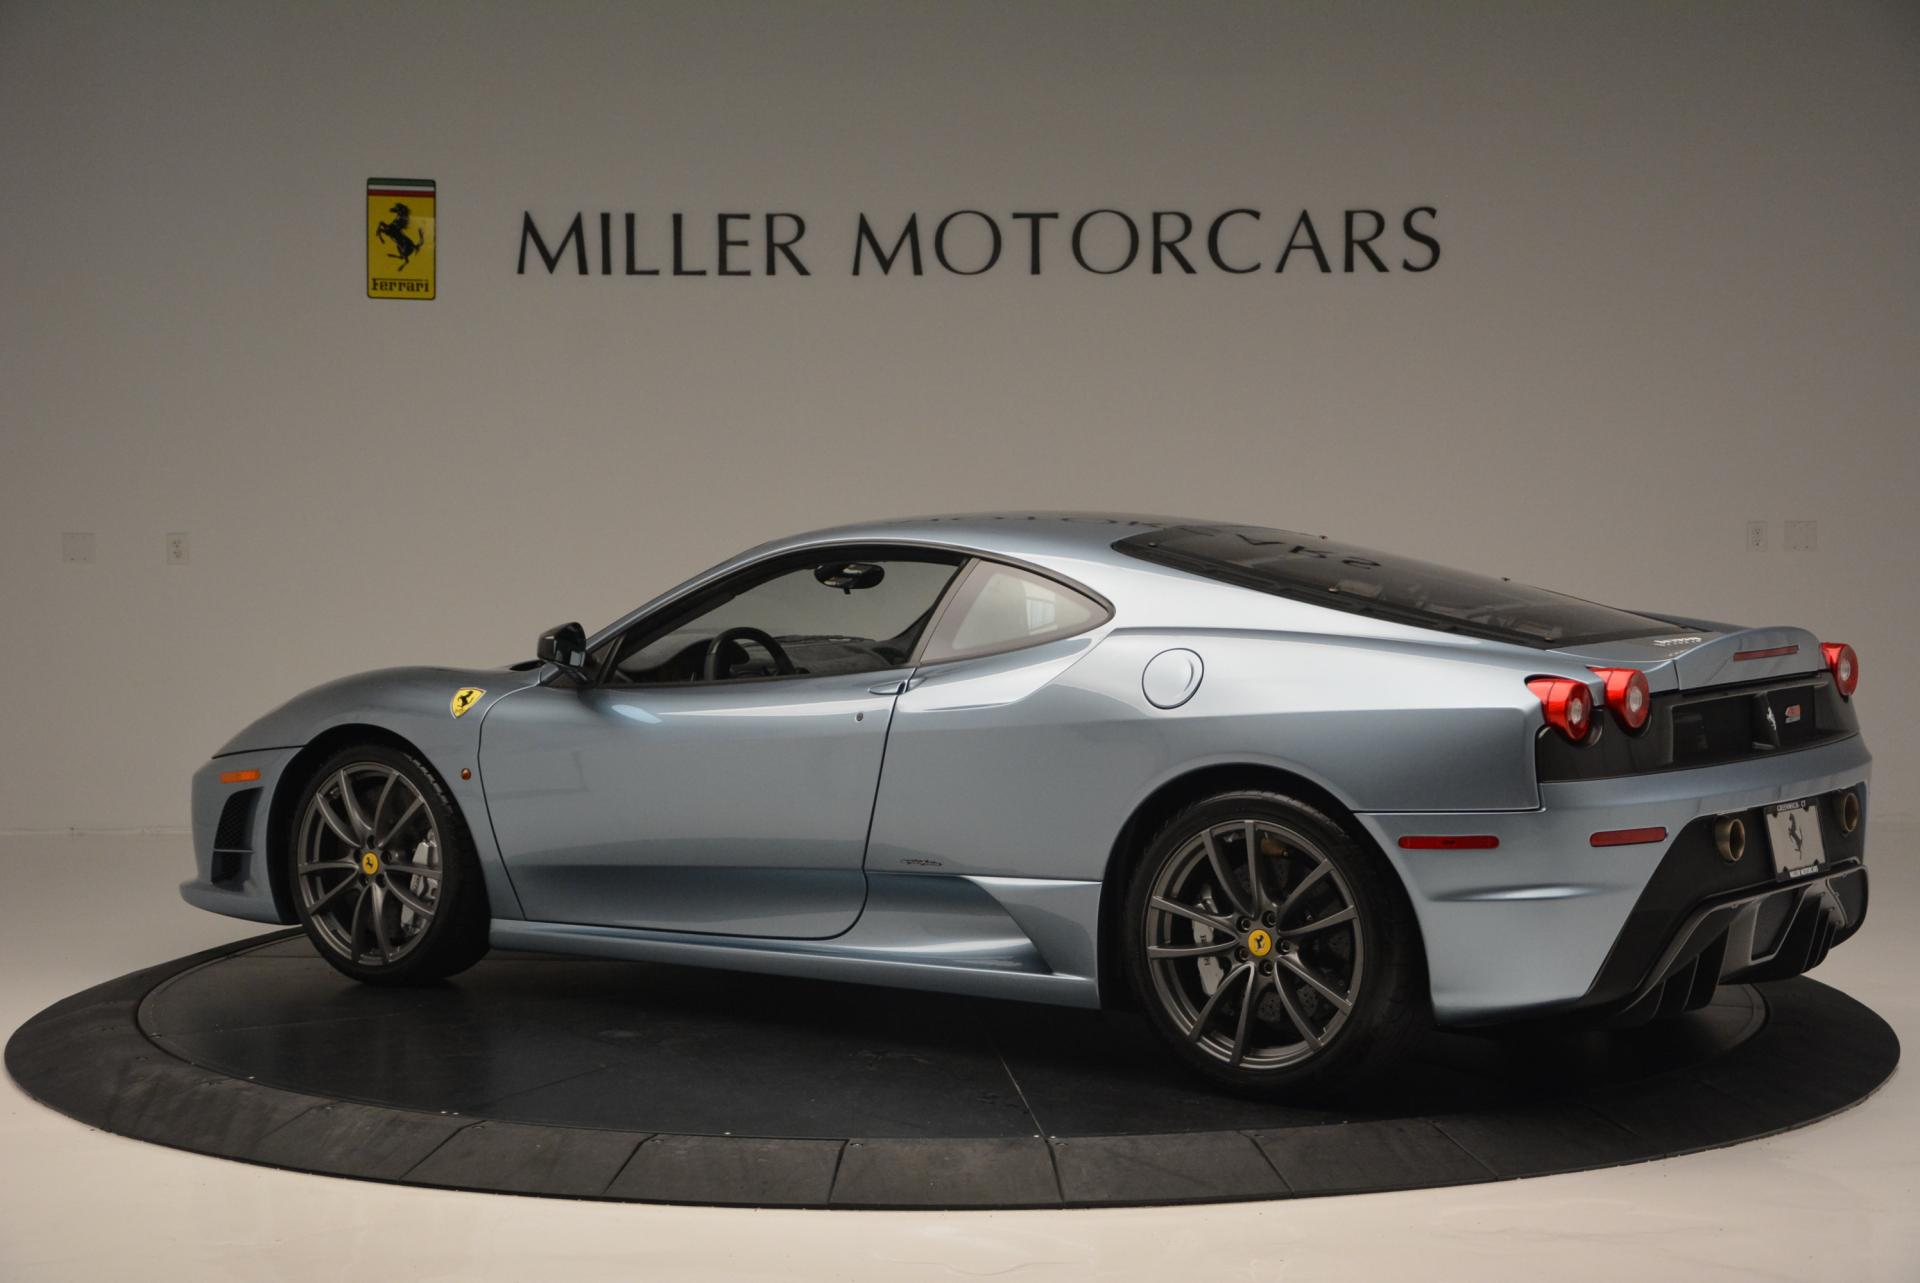 Used 2008 Ferrari F430 Scuderia For Sale In Greenwich, CT 146_p4